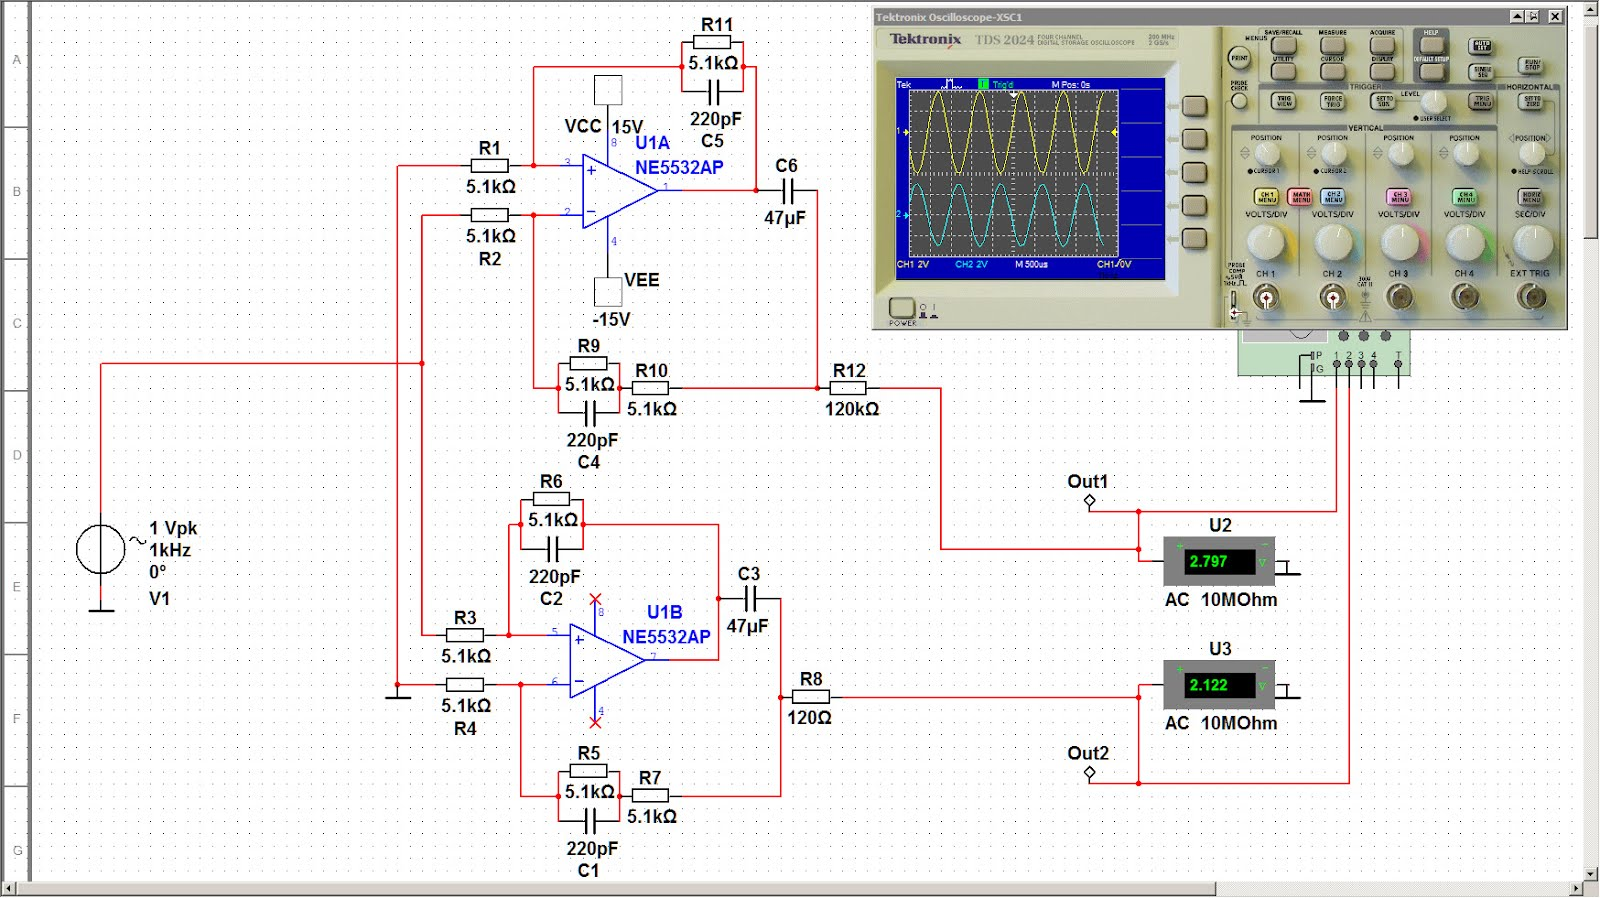 Custom Pcb For Diy Electronics More Unbalanced To Balanced Converters Block Diagram Inverting Amplifier The Reason Is That Operation Amplifiers Not Same With Inverted And Non Mode But Schematic Symmetrical Outputs